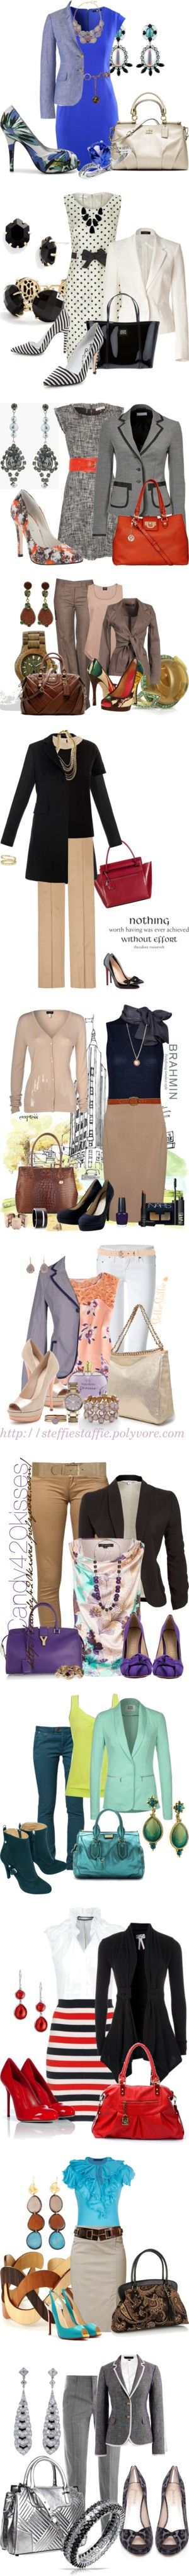 """work Wear 3"" by coromitas on Polyvore:"